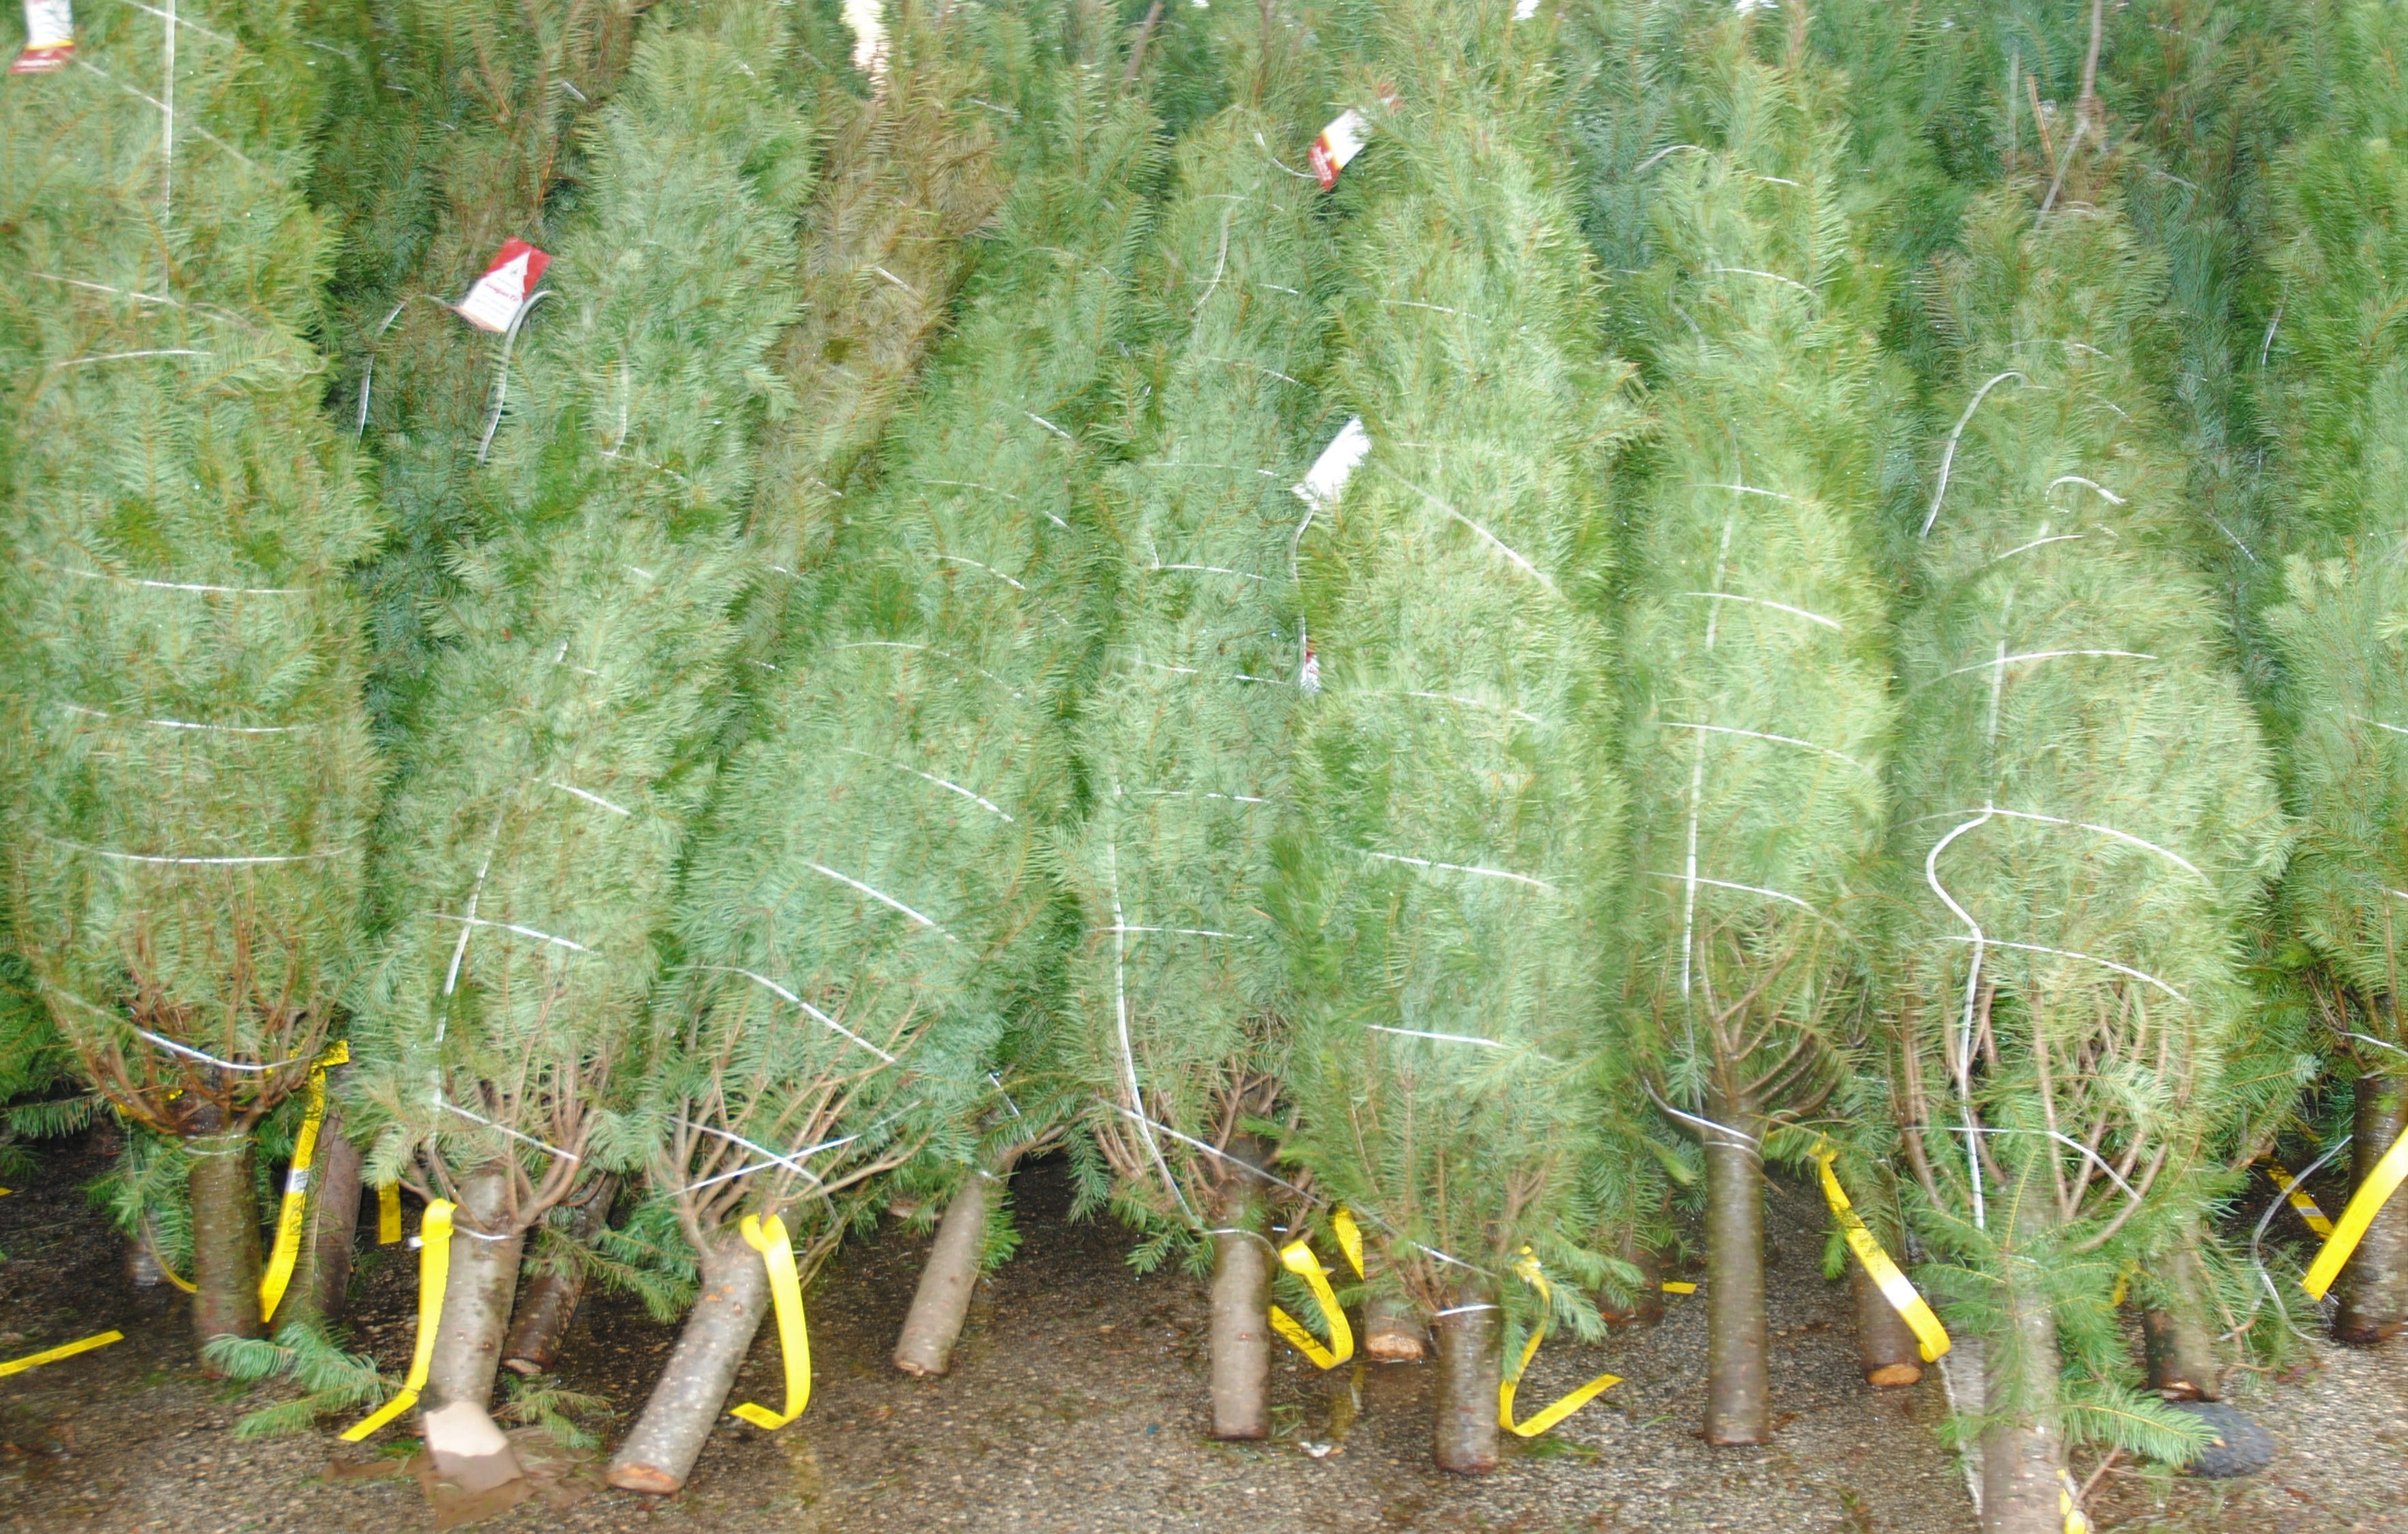 Fresh and fumigated Christmas trees on sale Nov. 25, 2019 at Home Depot, Tamuning, Guam